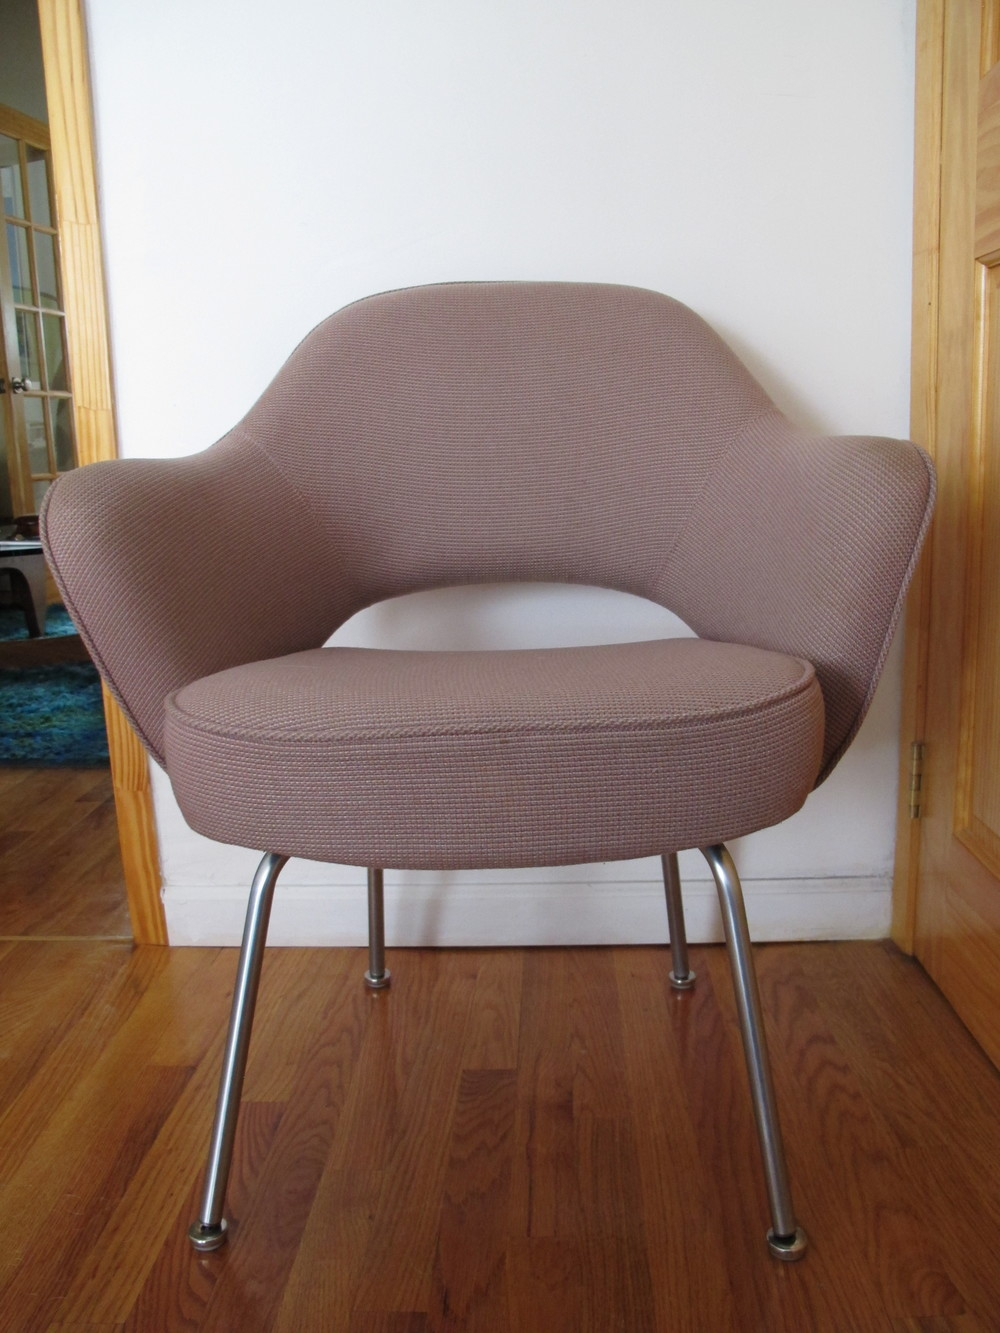 KNOLL EXECUTIVE ARMCHAIR BY SAARINEN